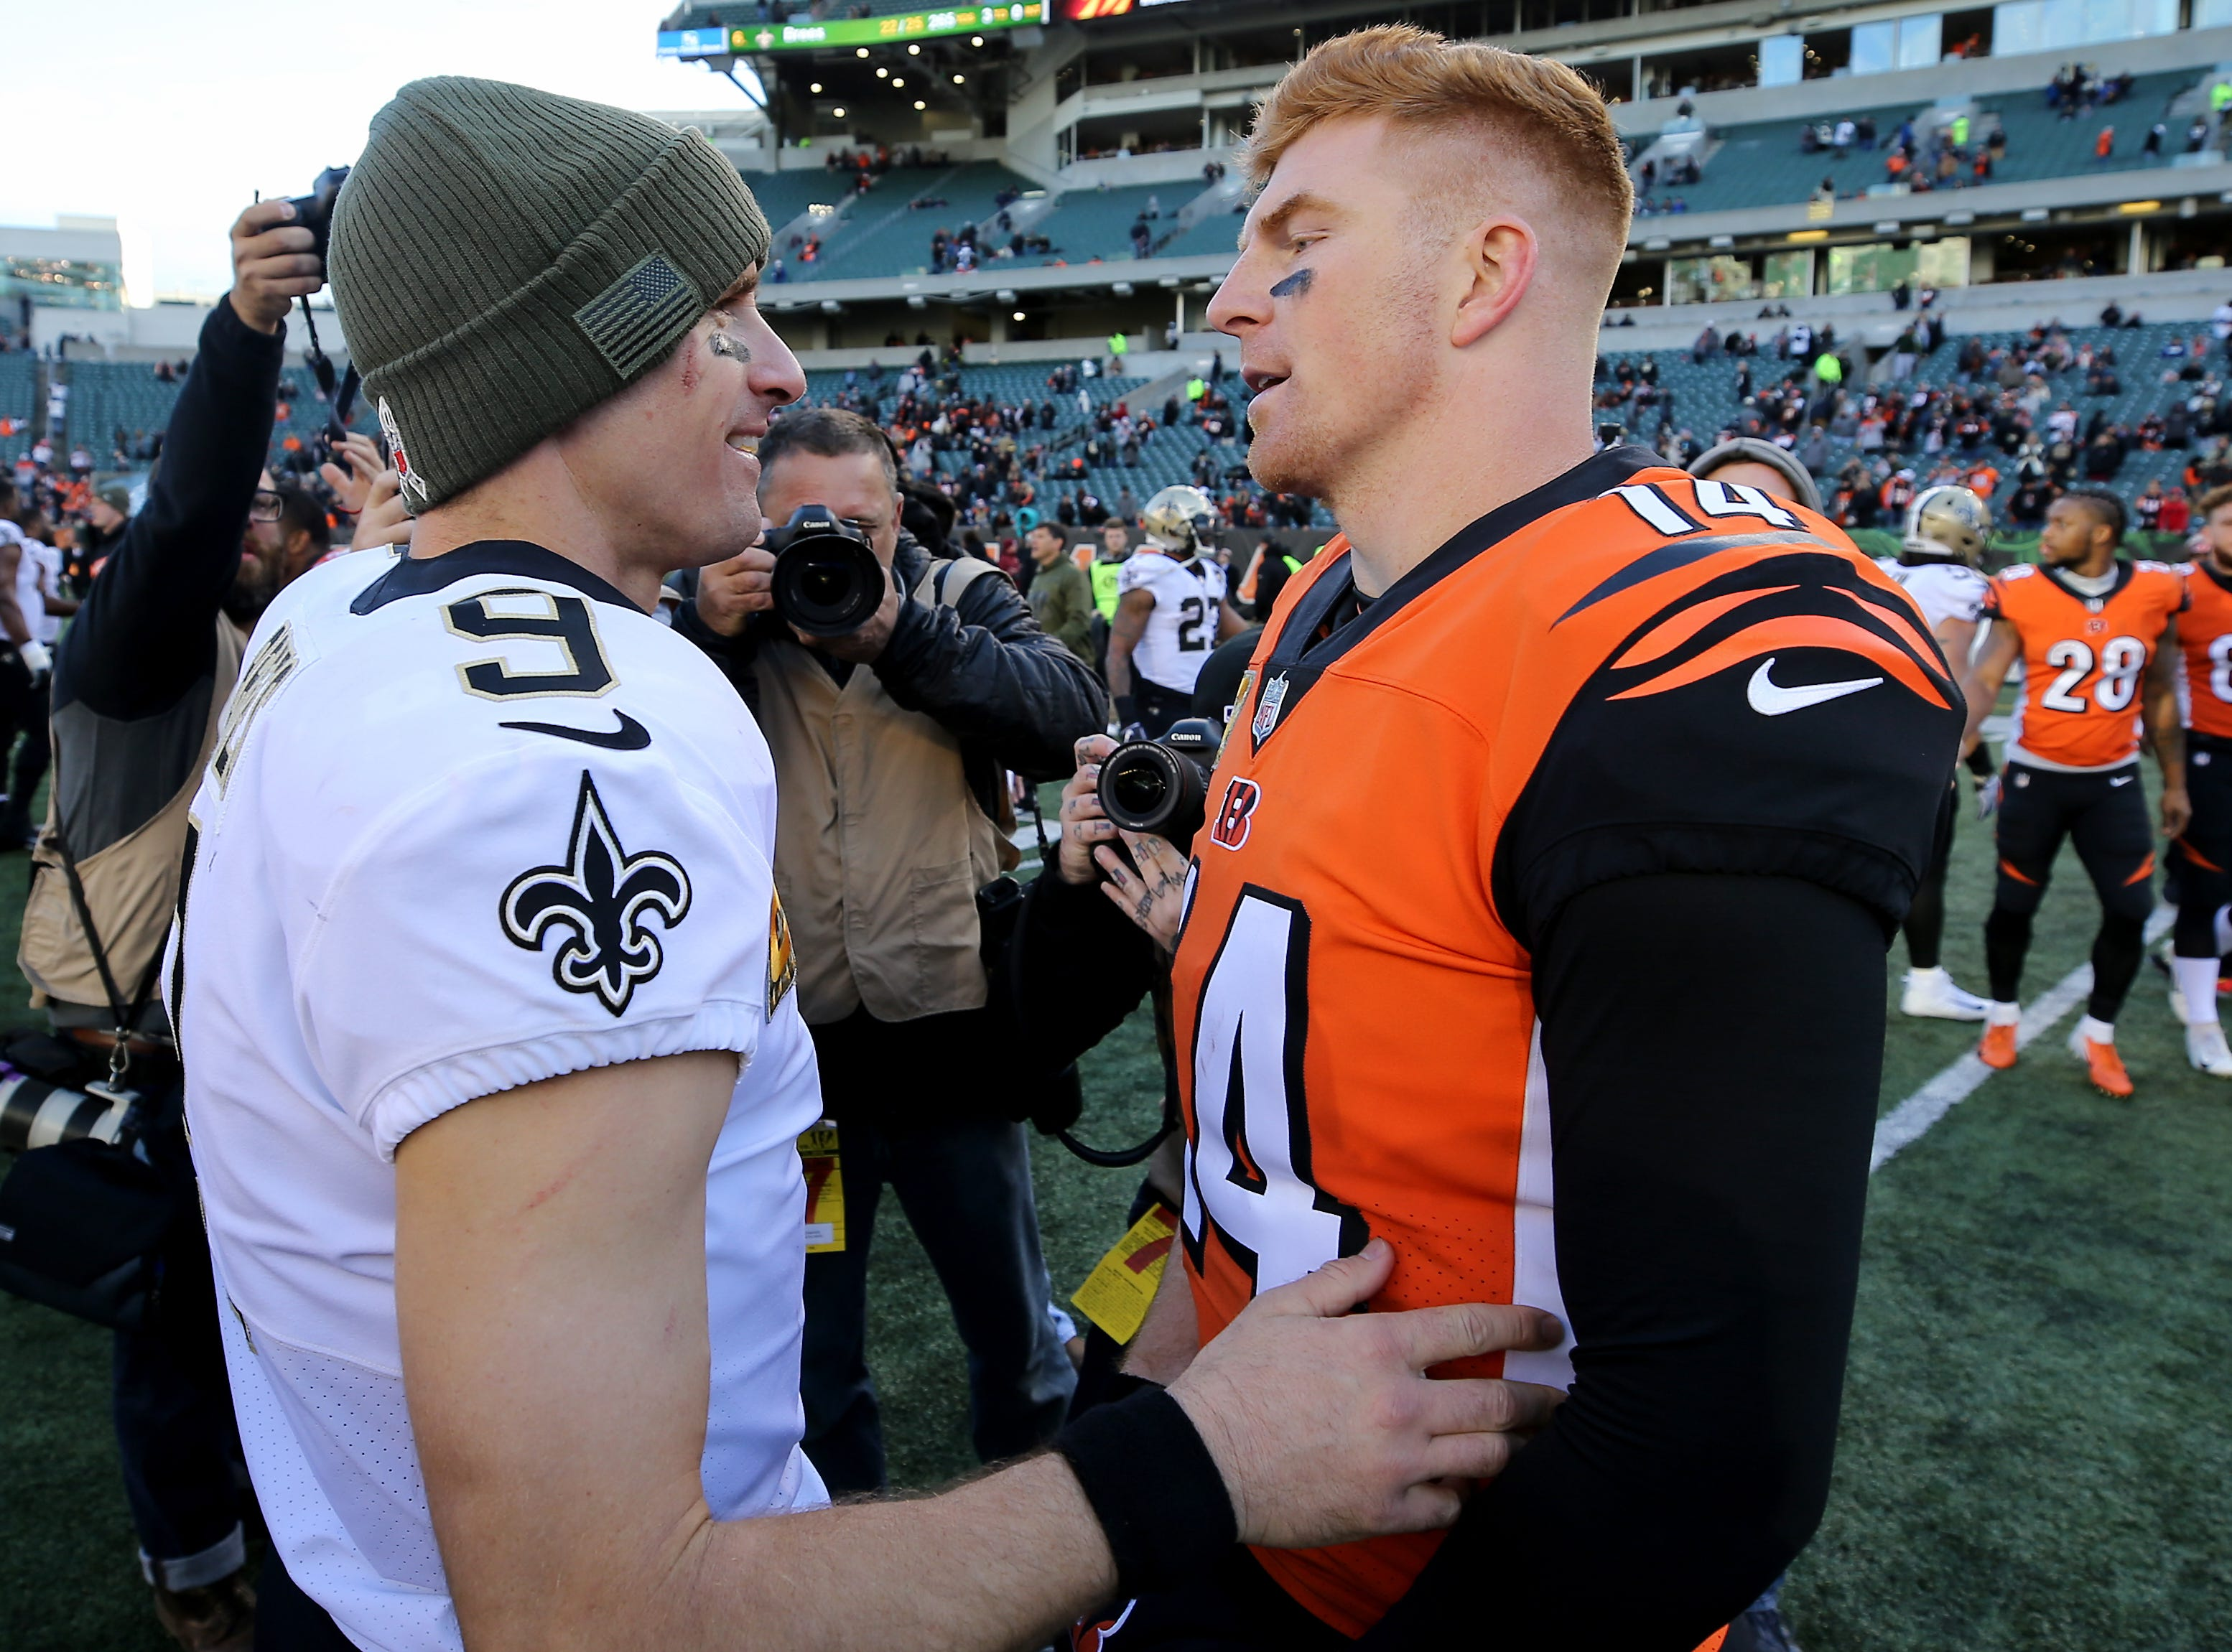 New Orleans Saints quarterback Drew Brees (9), left, and Cincinnati Bengals quarterback Andy Dalton (14) shake hands at the end of the Week 10 NFL game between the New Orleans Saints and the Cincinnati Bengals, Sunday, Nov. 11, 2018, at Paul Brown Stadium in Cincinnati. The New Orleans Saints won 51-14.